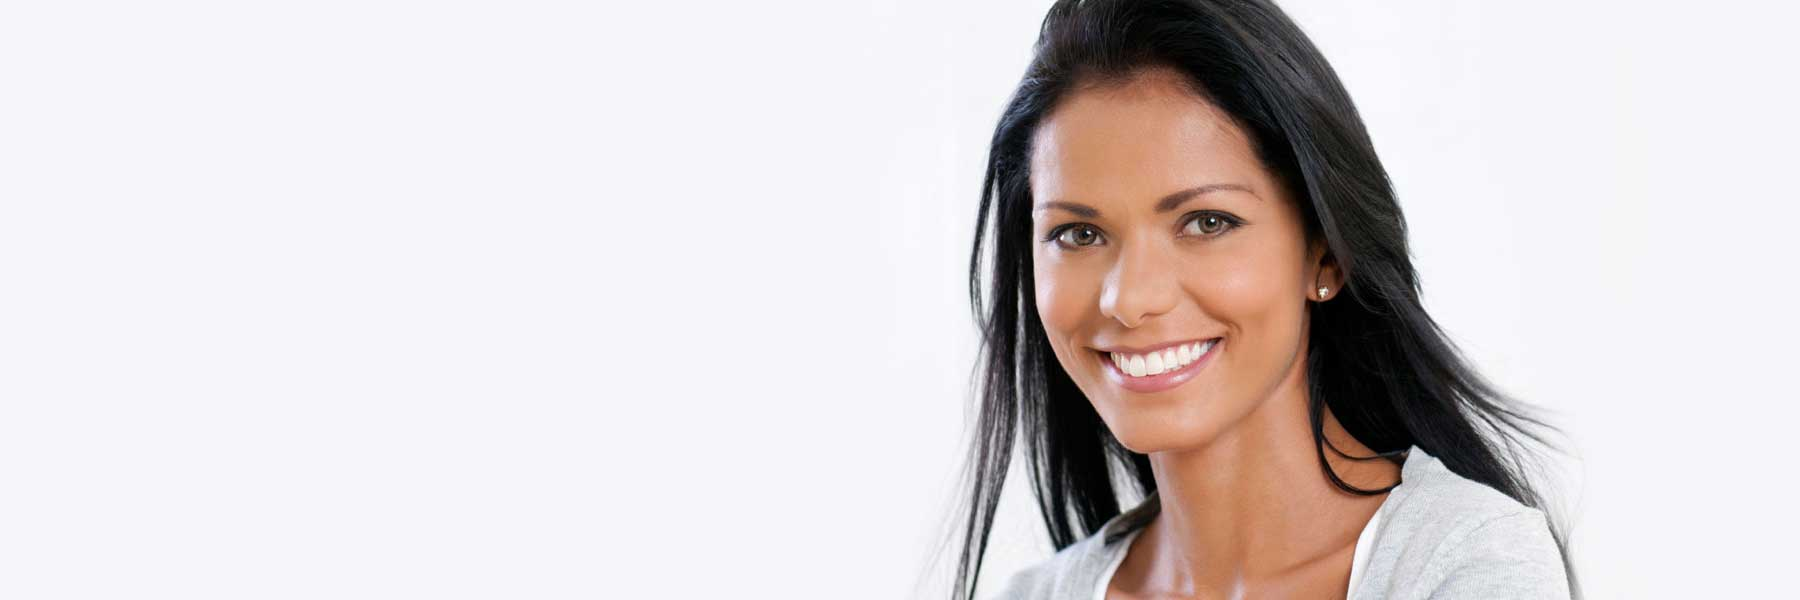 Woman Smiling | Dental Cleanings Santa Monica CA